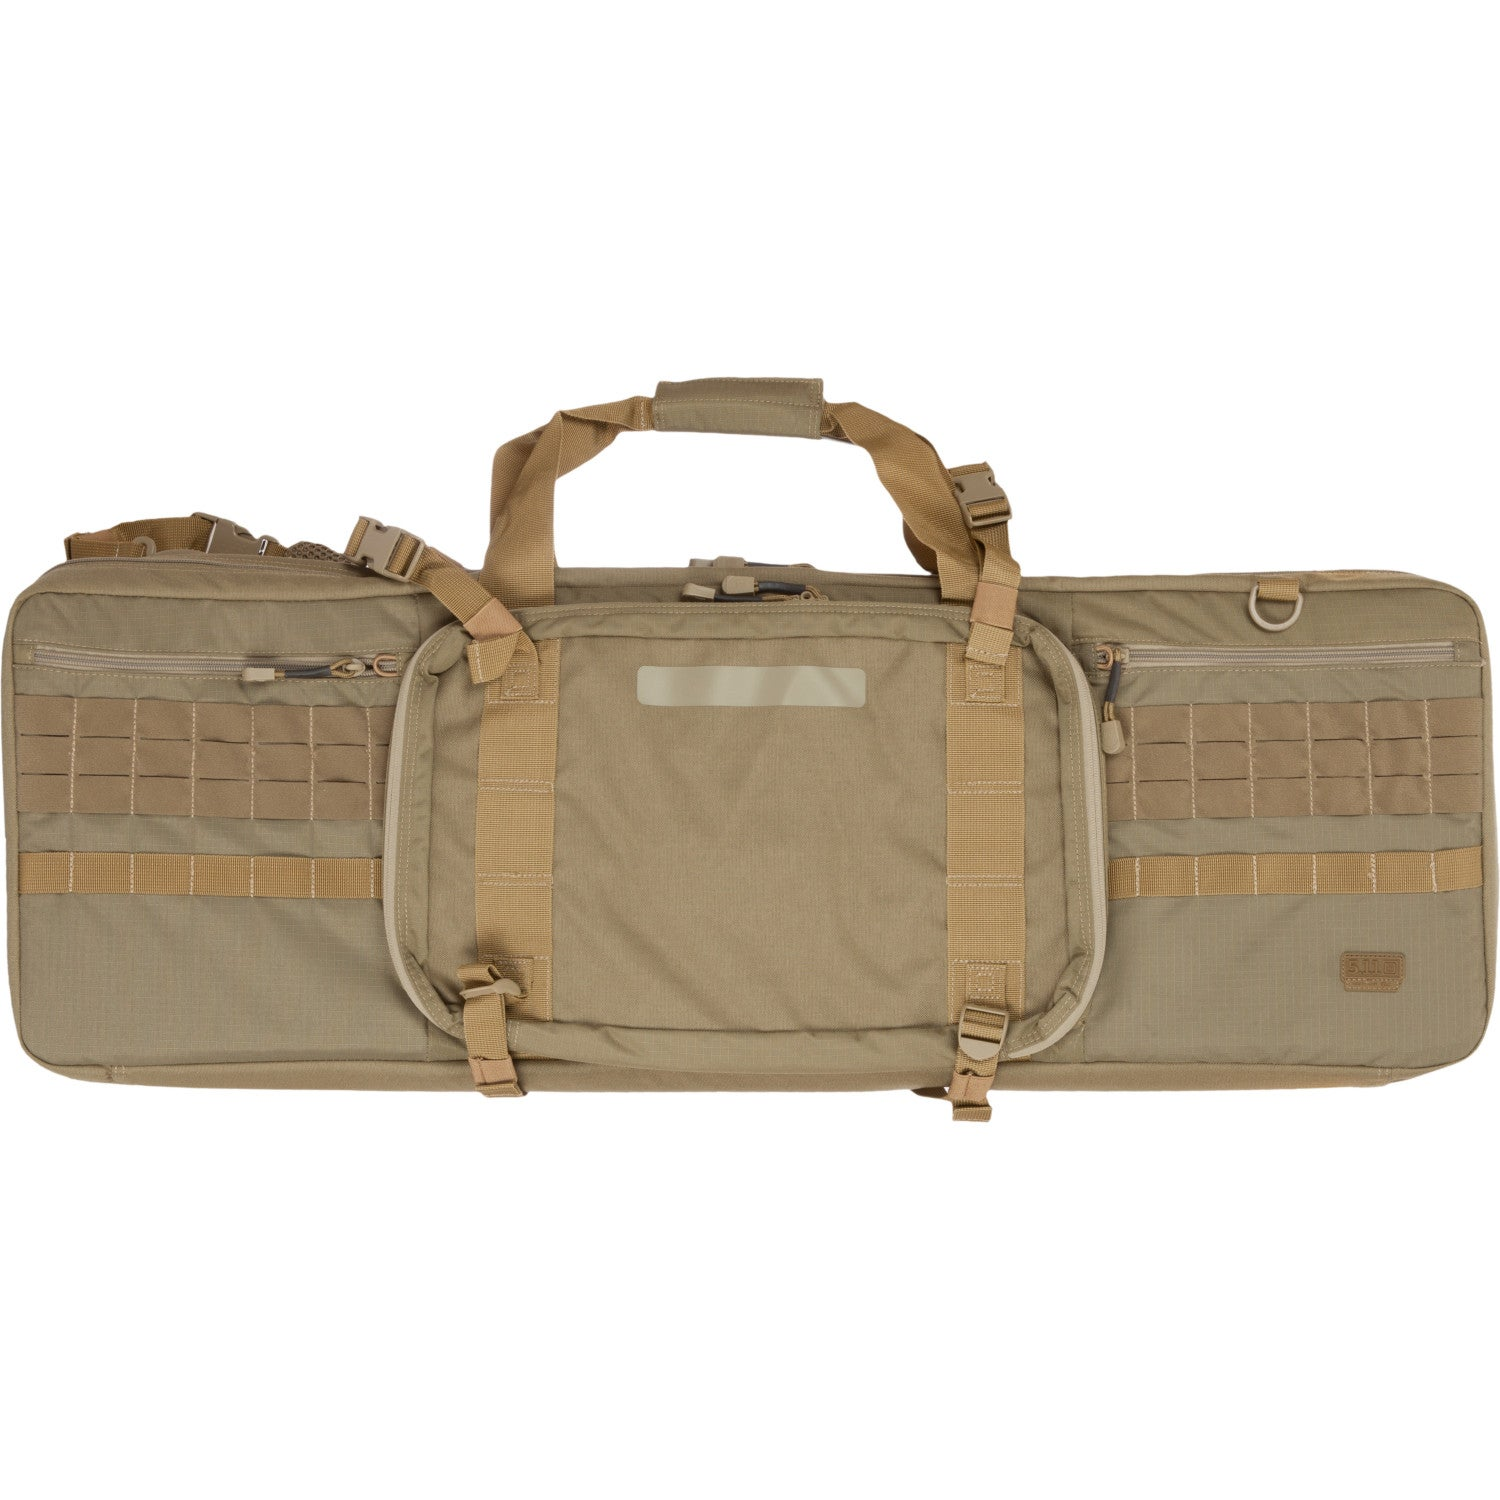 5.11 Tactical Double 36 Rifle Case Pistolhylster